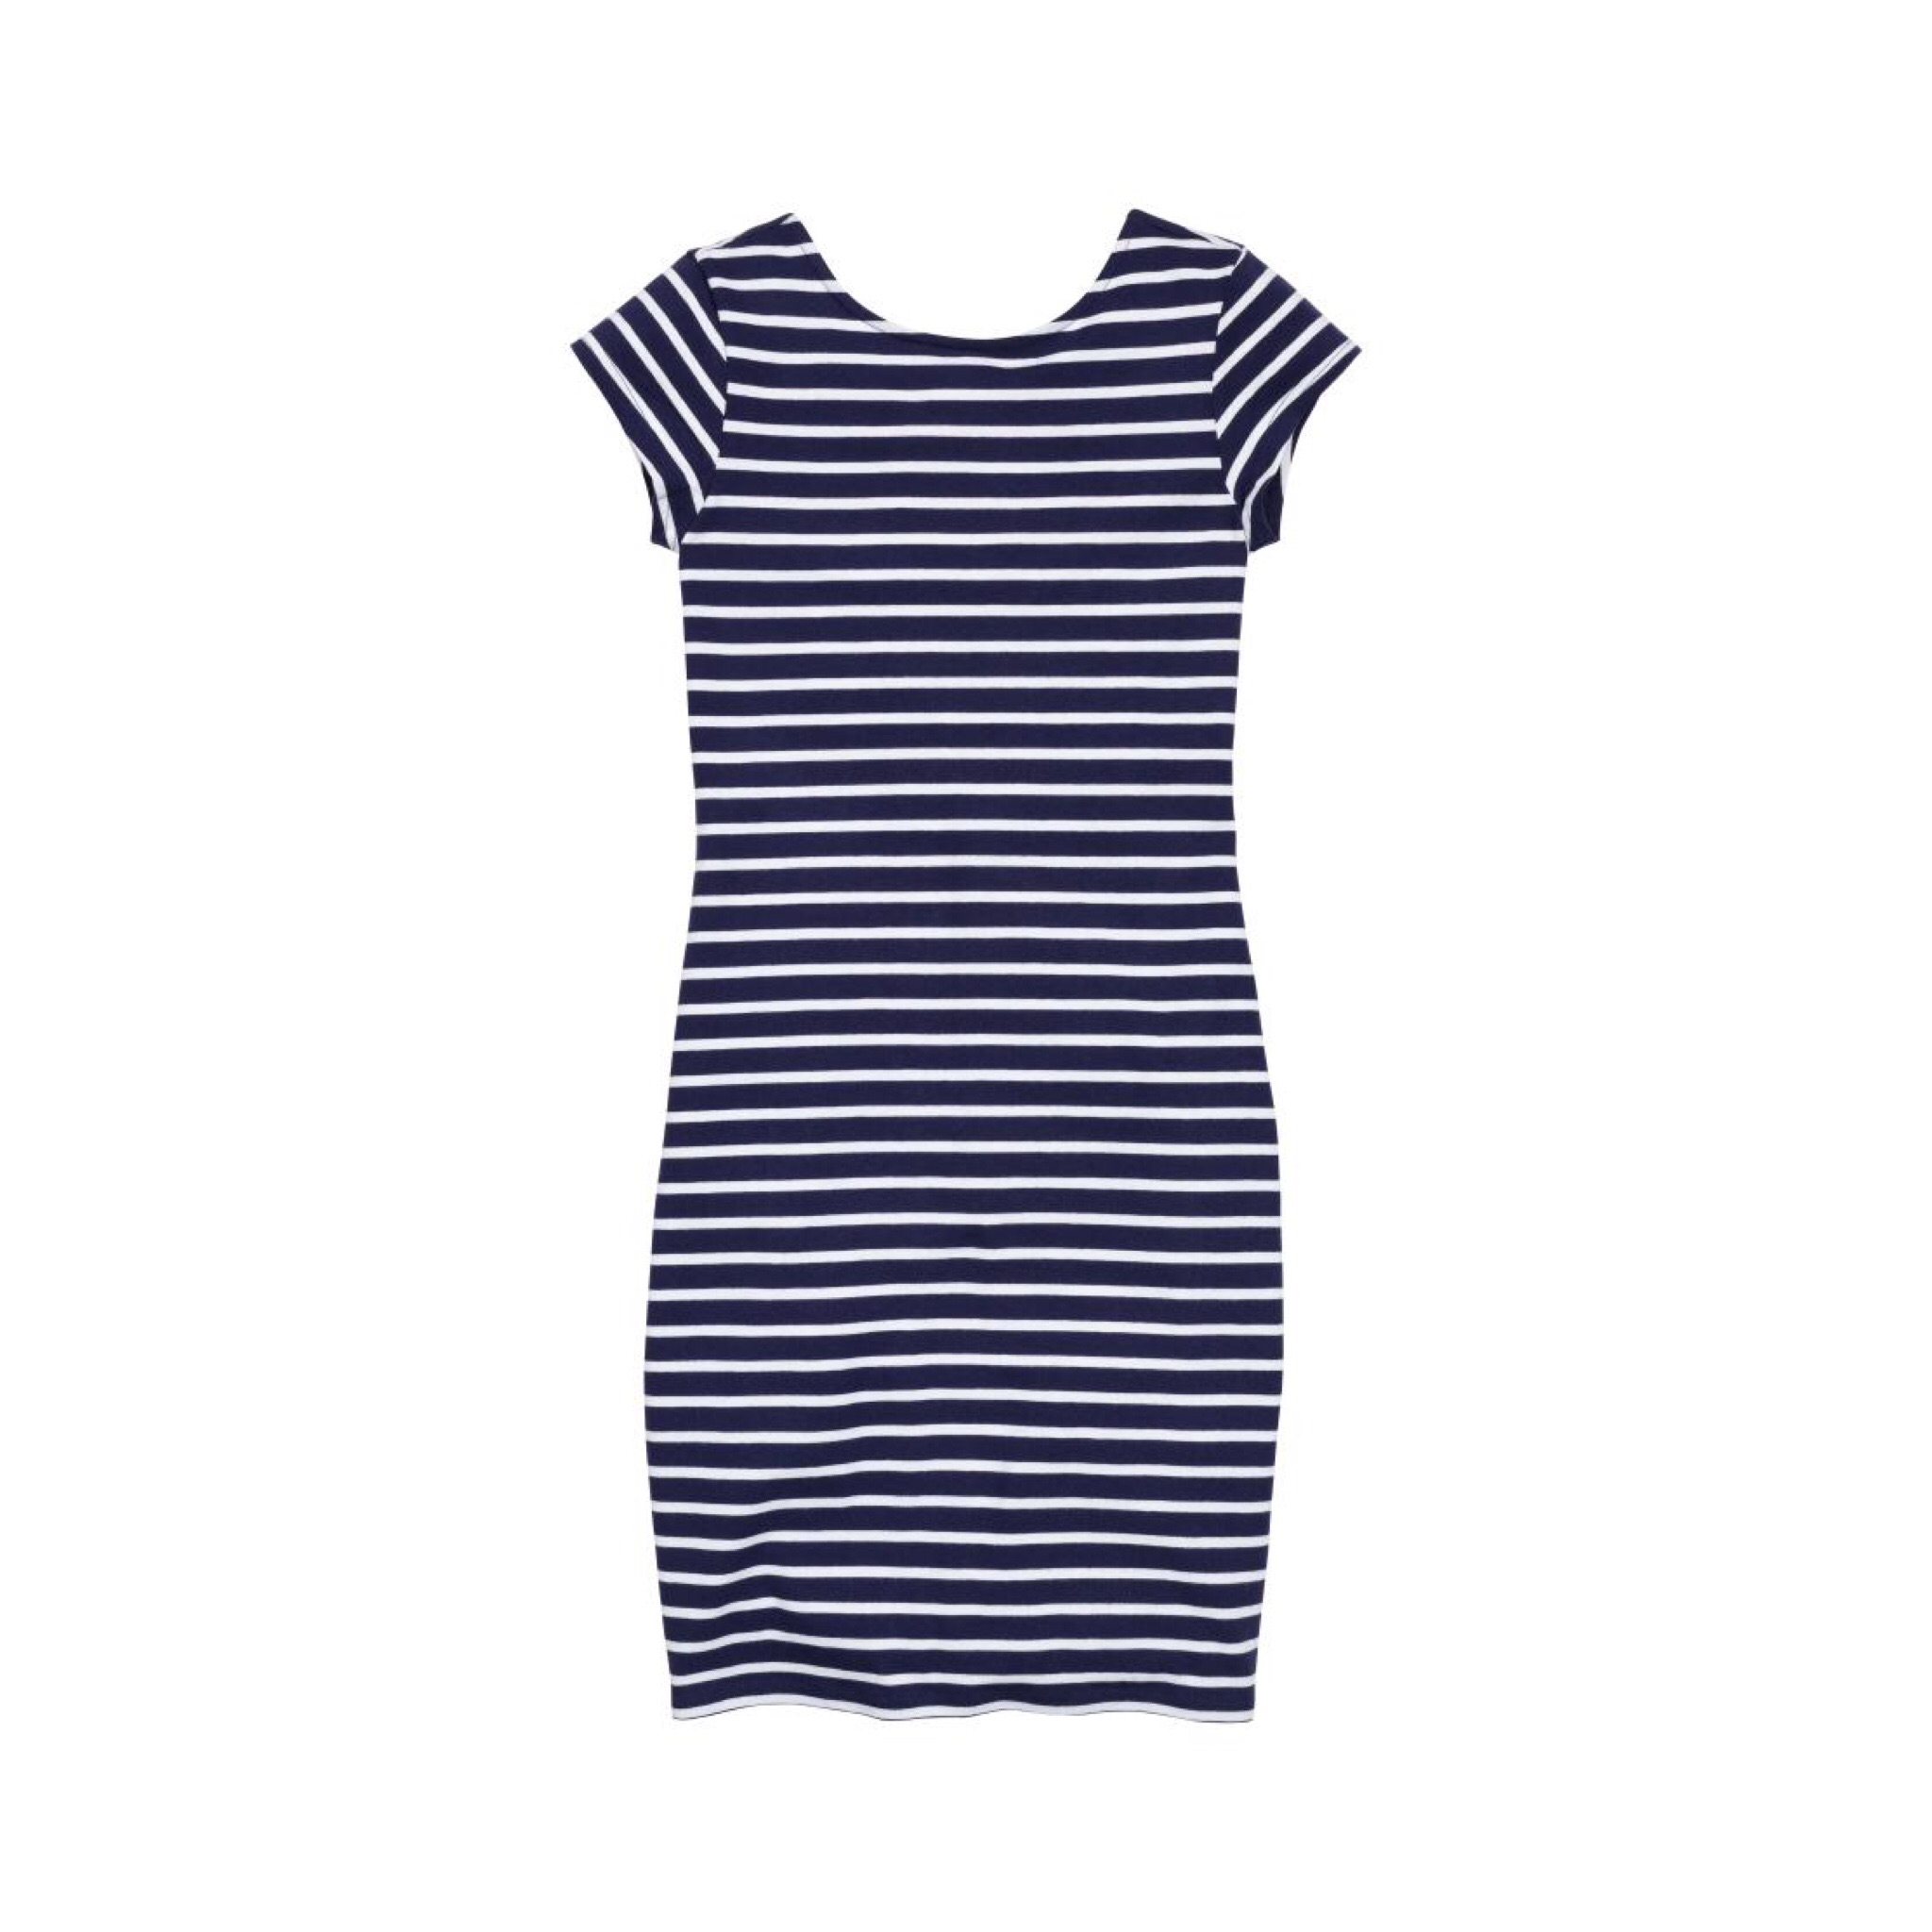 H&M striped dress ... I always have a striped dress in my summer wardrobe, you can dress them up or down and they are super easy and comfy. I bought one similar to this one from H&M